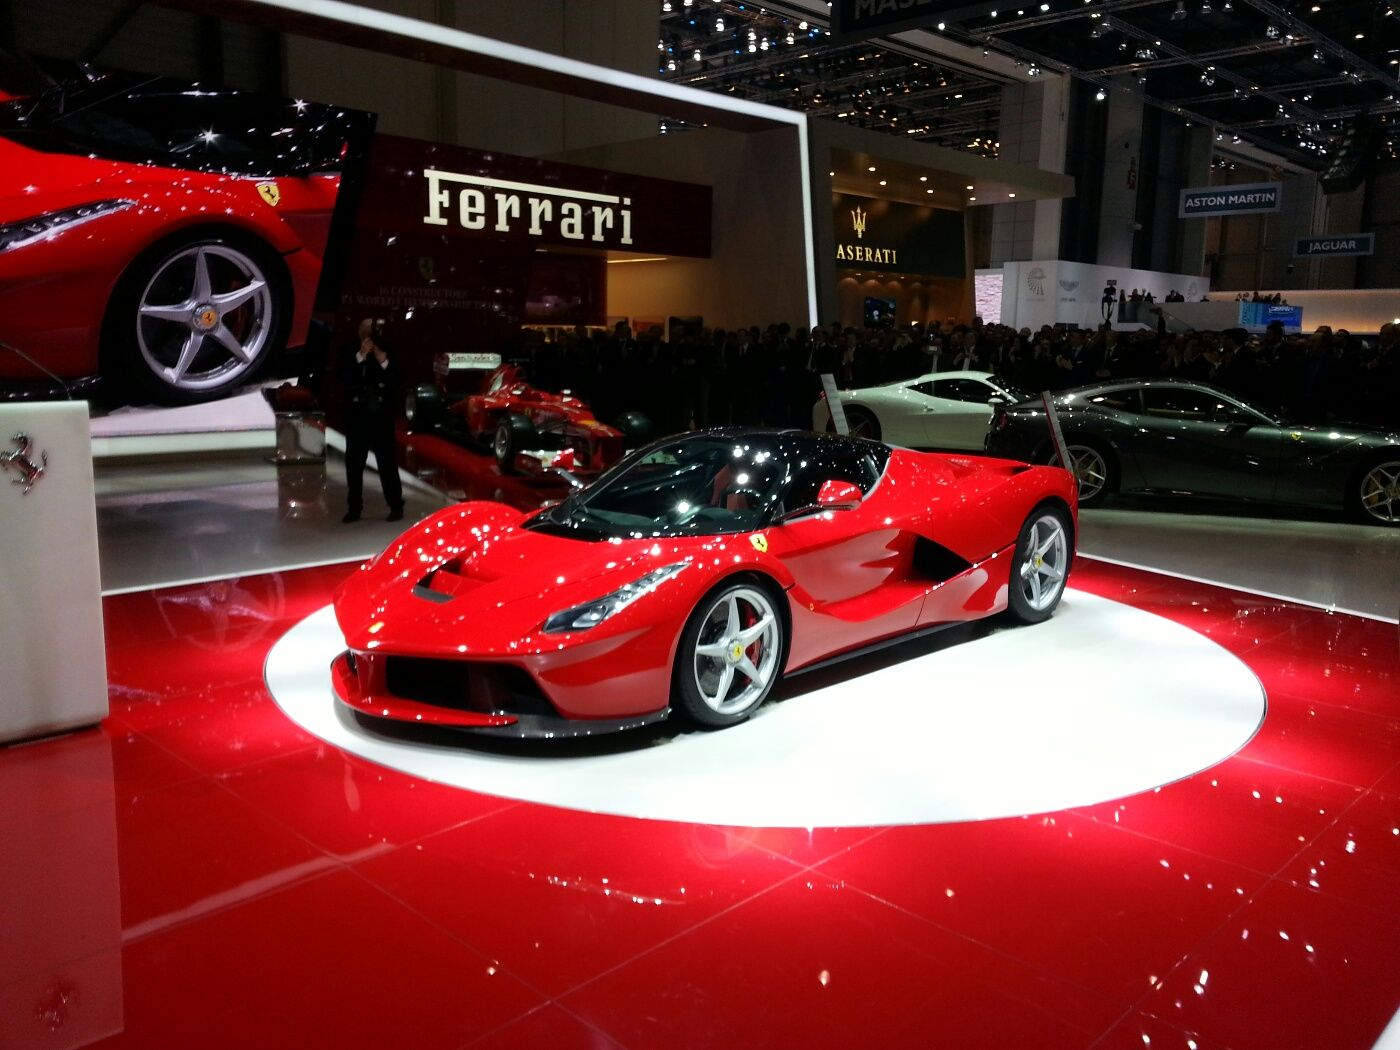 Wonderful The Ferrari LaFerrari Hybrid Supercar From Ferrari Has Been The Highlight  Of The 2013 Geneva Motor Show Attracting Each Individual Having A Glimpse  Of It.